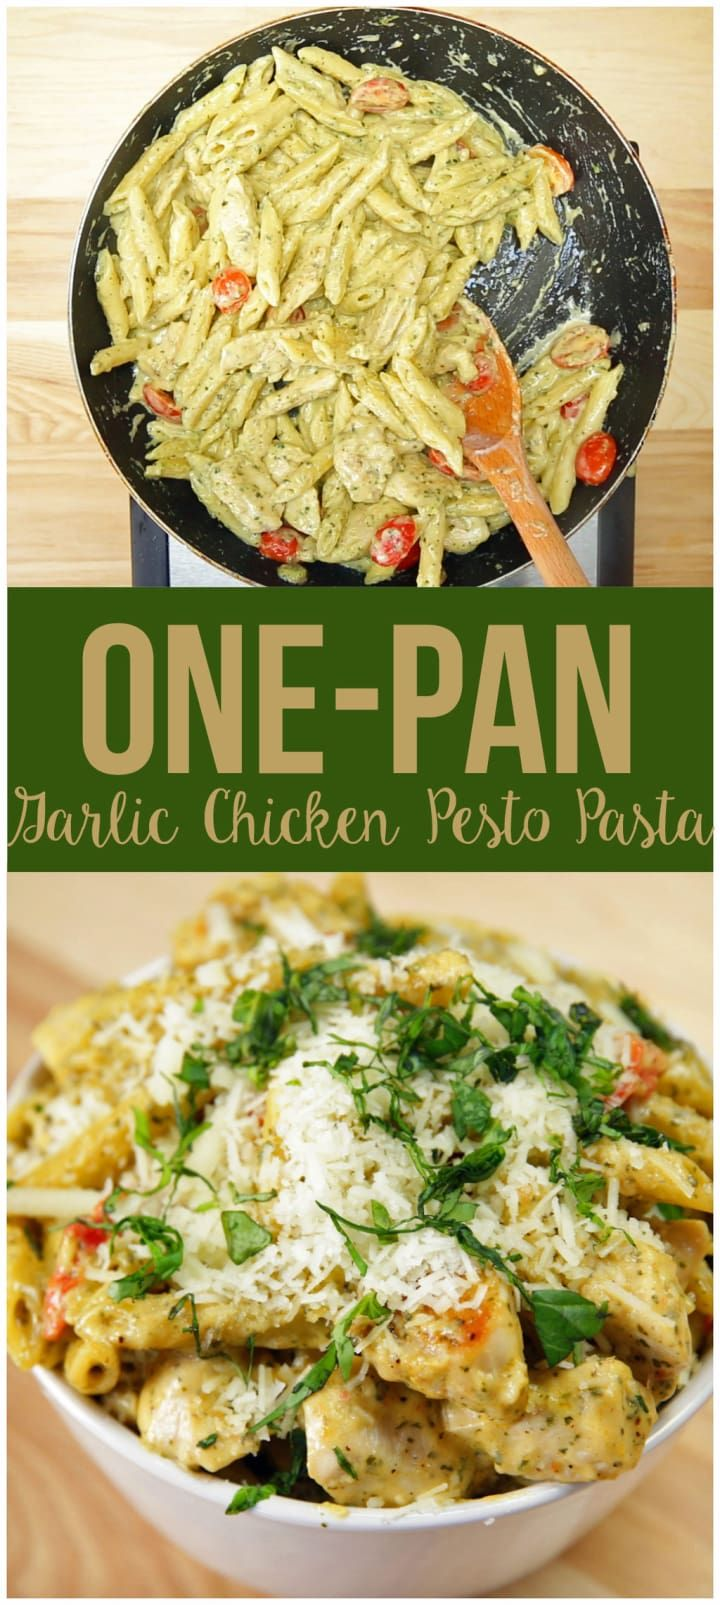 One-Pan Garlic Chicken Pesto Pasta (substitute the noodles with spaghetti squash or zucchini to make it low-carb)